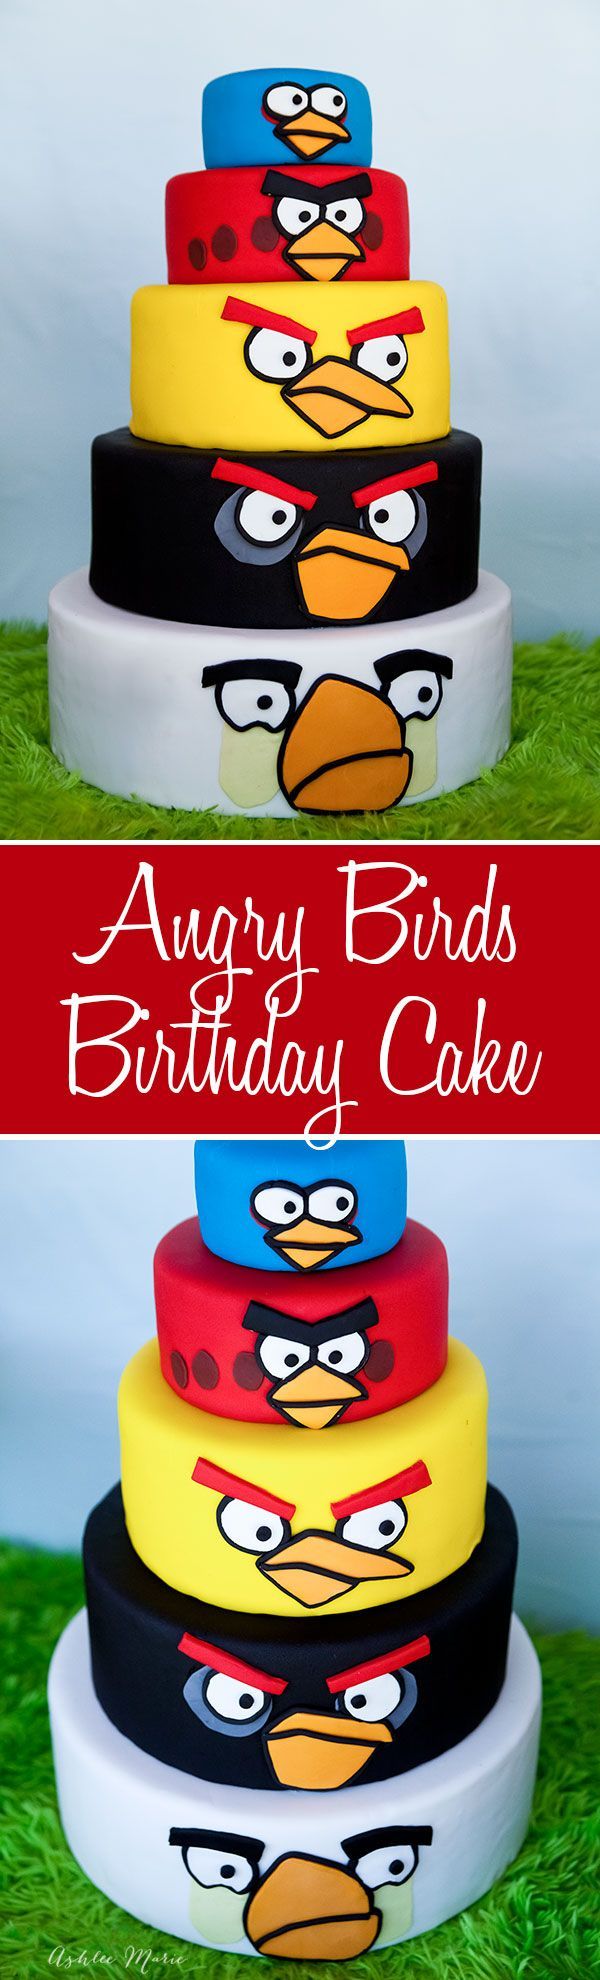 a 5 tier angry bird birthday cake, each layer is a different bird and it was a huge hit at the party with all the kids